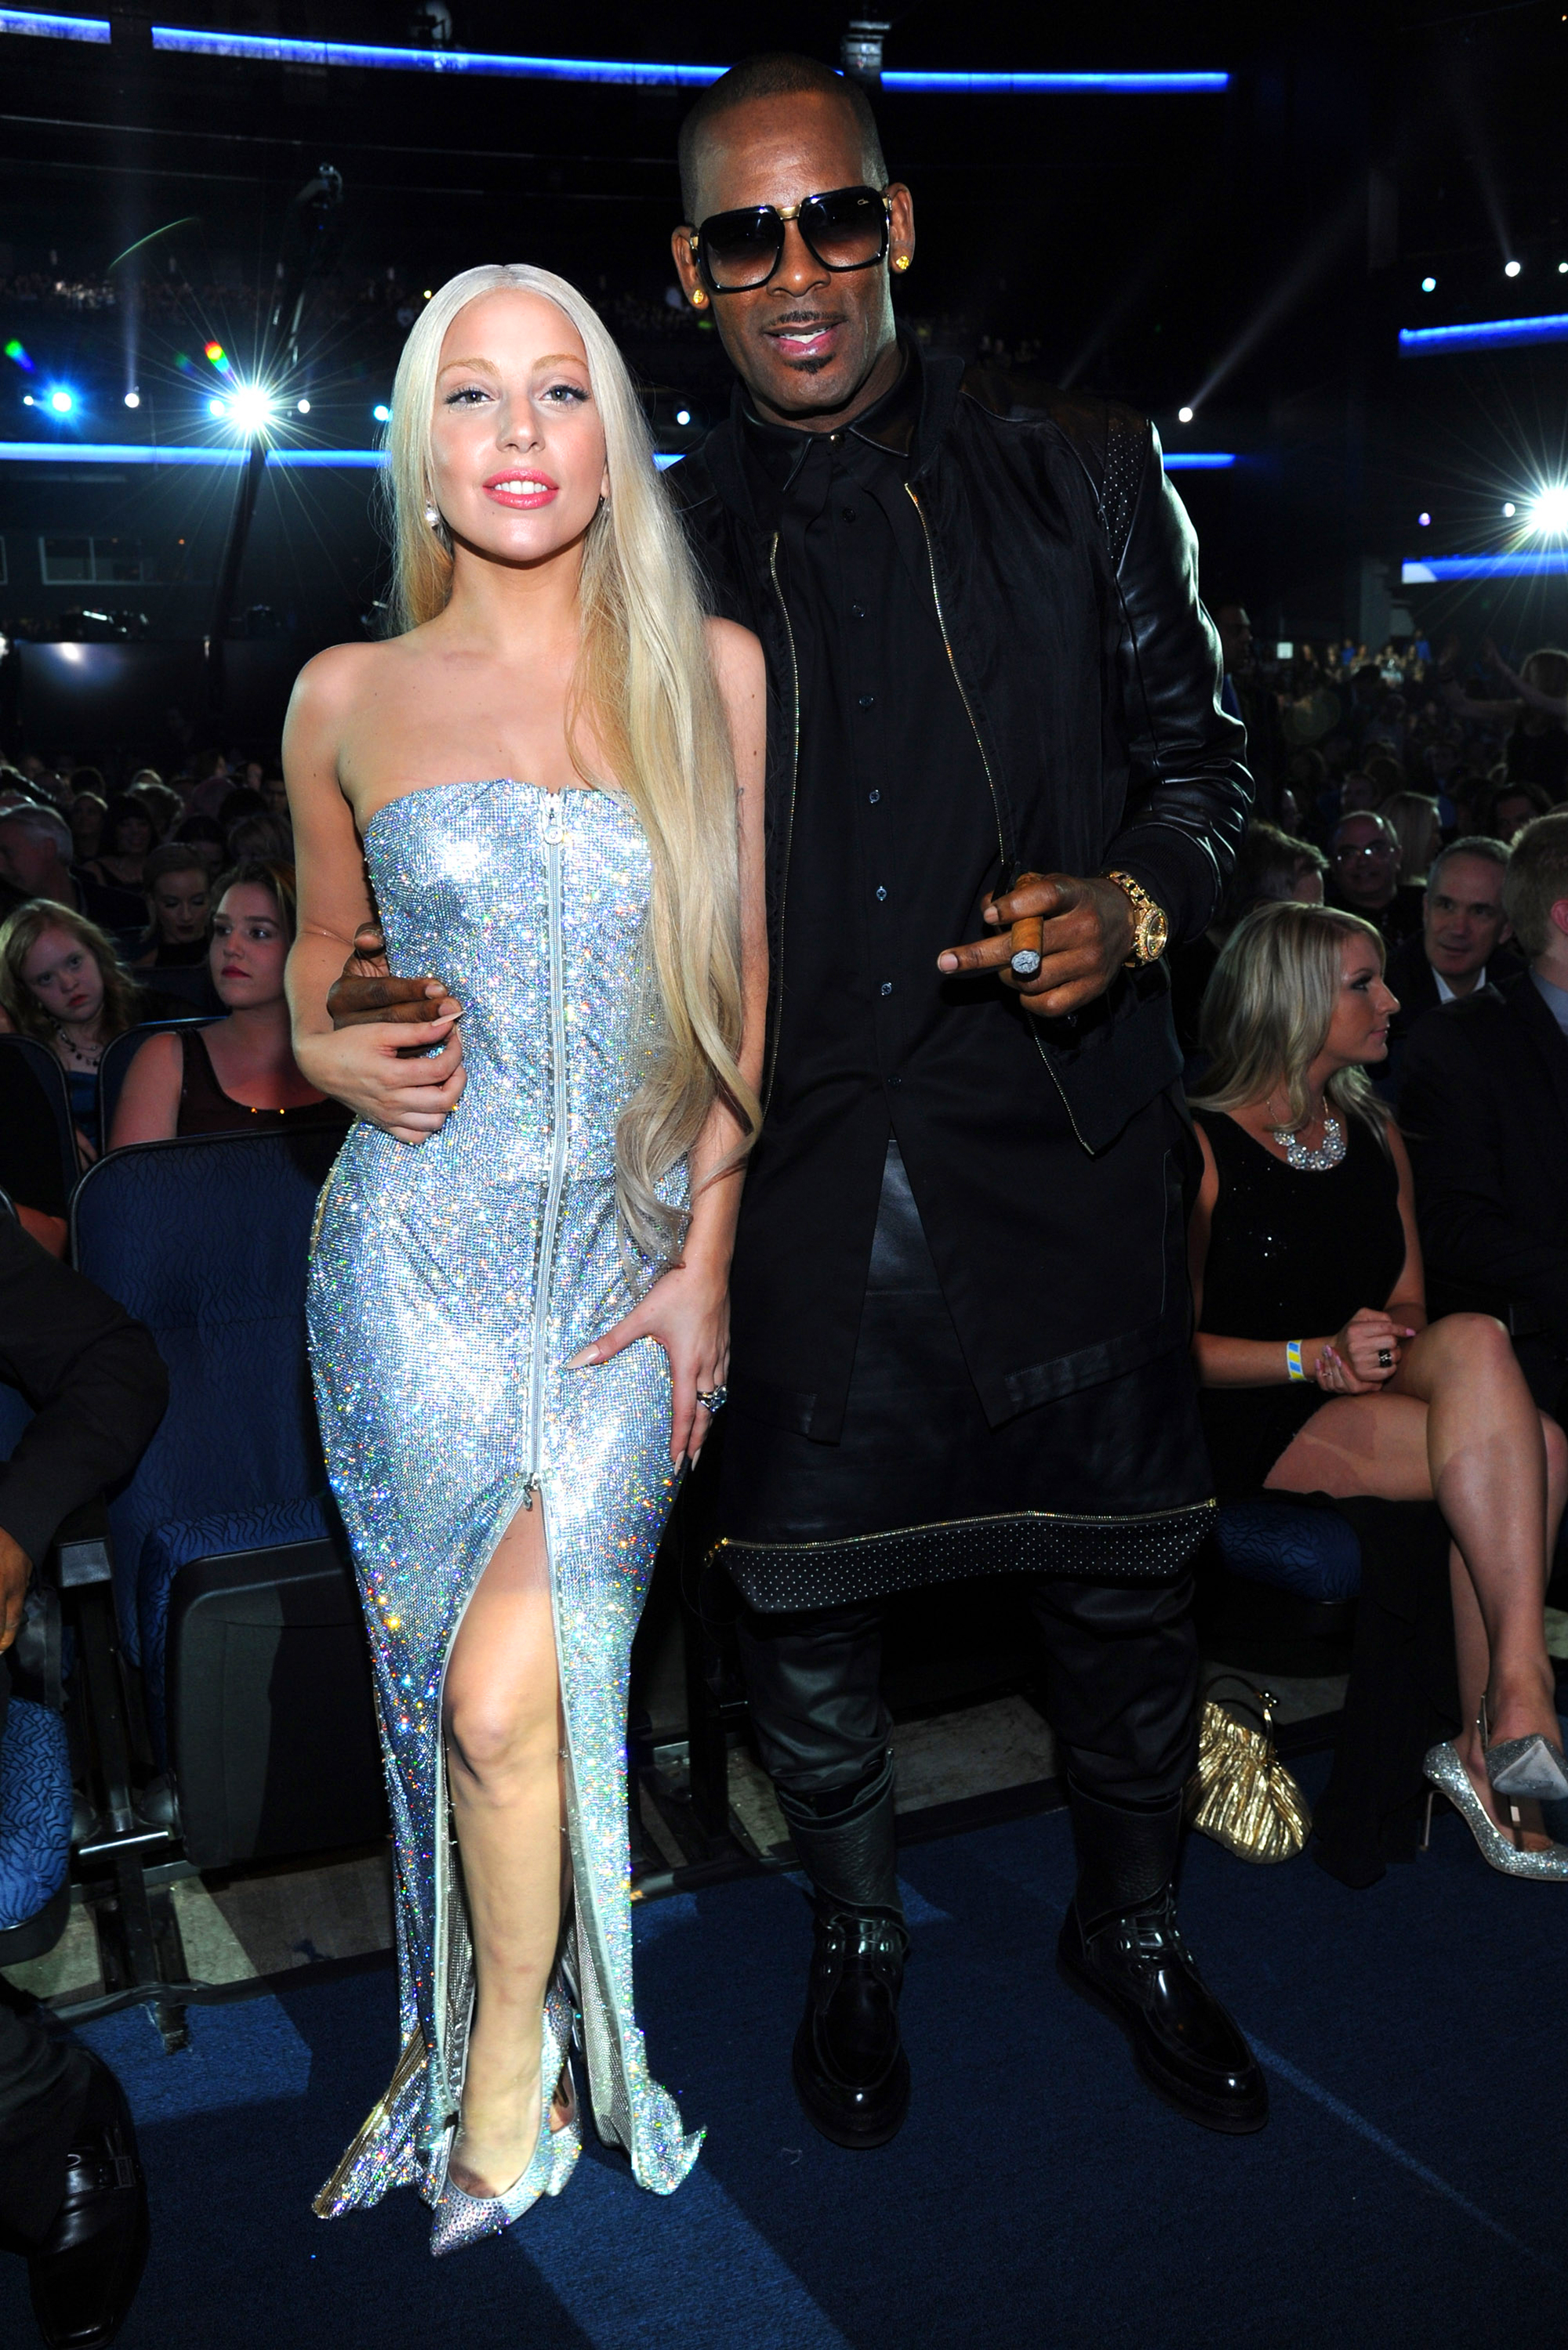 ady Gaga, Christina Aguilera, John Legend and More Stars Who Have Spoken Out Against R. Kelly - LOS ANGELES, CA – NOVEMBER 24: Lady Gaga and R Kelly attend 2013 American Music Awards at Nokia Theatre L.A. Live on November 24, 2013 in Los Angeles, California. (Photo by Kevin Mazur/AMA2013/WireImage)